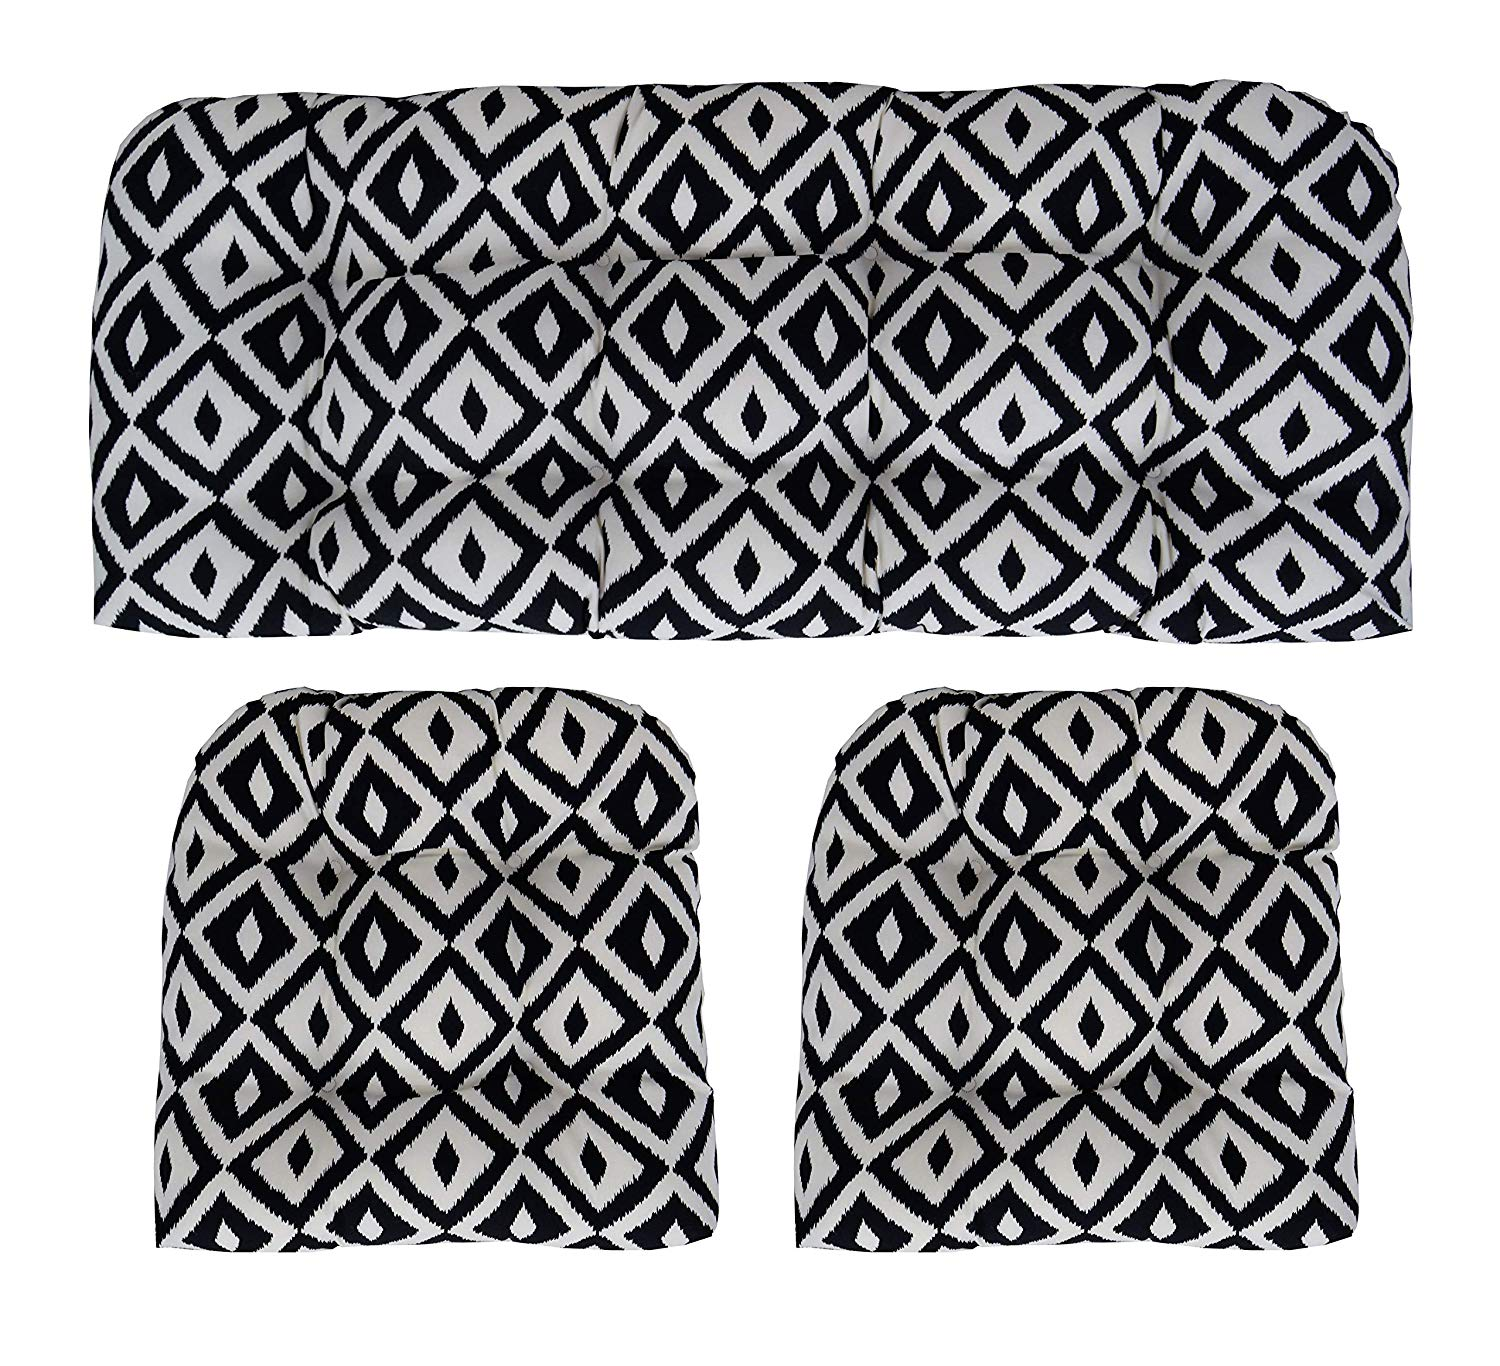 """RSH Décor Indoor Outdoor Large(44"""" W x 22"""" D & 21""""W x 21"""" D) Wicker Tufted 3 Piece Set 1 - Loveseat Settee & 2 - U - Shape Chair Cushions - Black and White Aztec Geometric Cushions"""